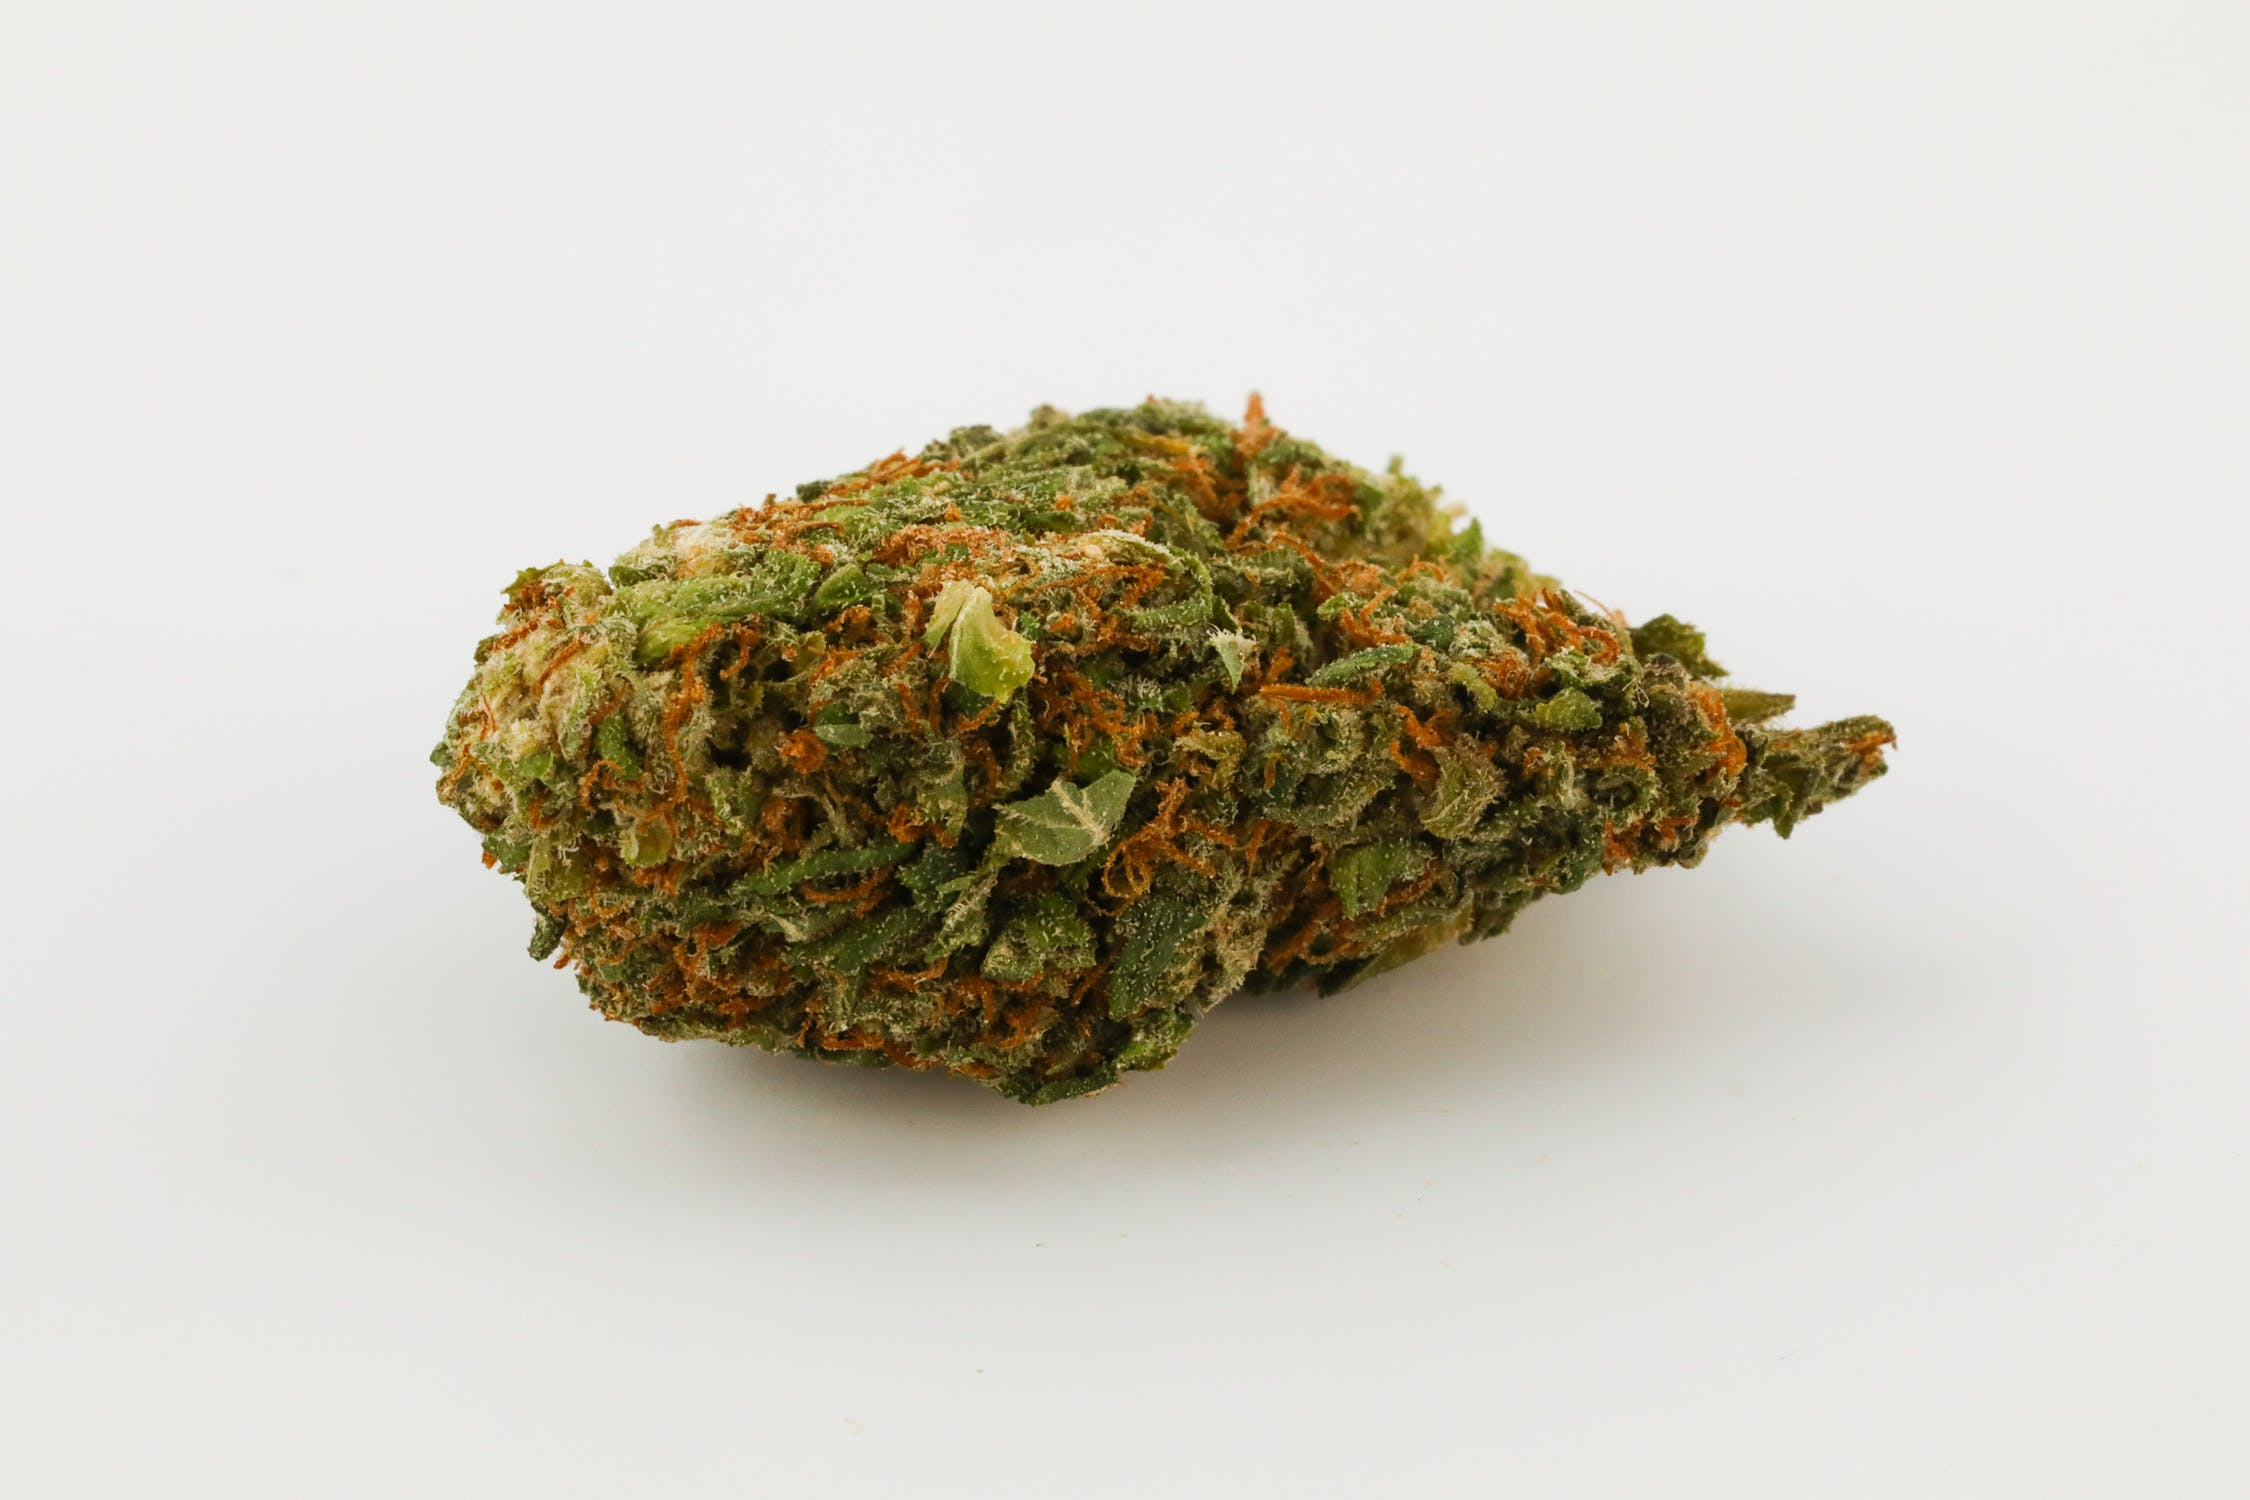 Confidential Cheese Weed; Confidential Cheese Cannabis Strain; Confidential Cheese Hybrid Marijuana Strain